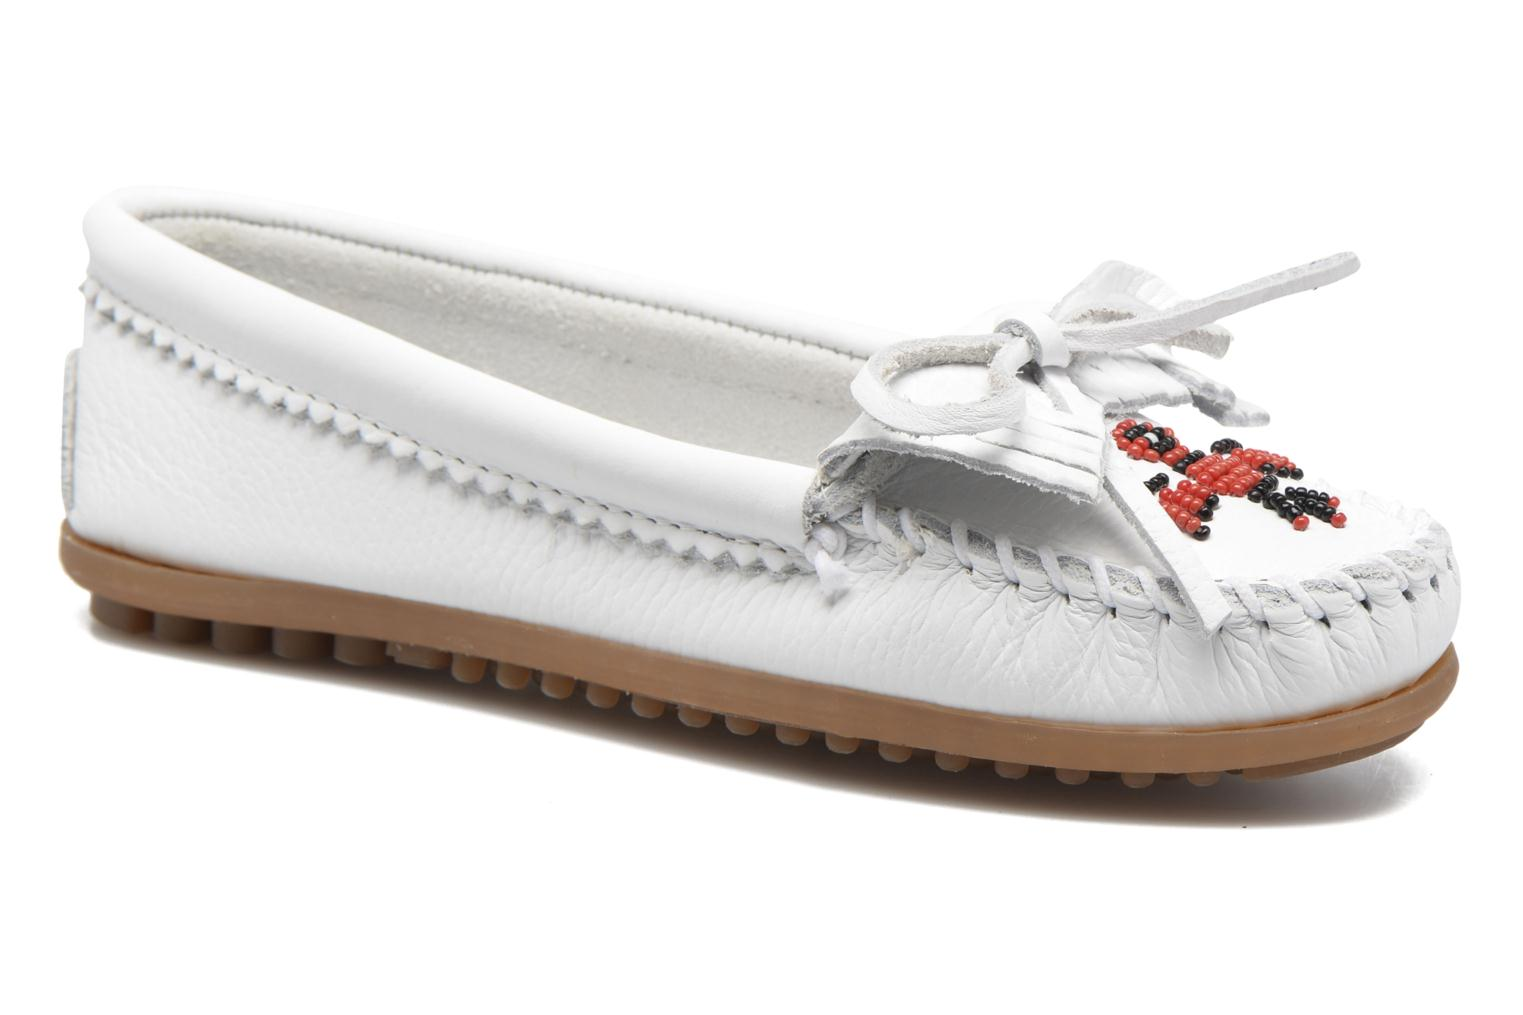 Marques Chaussure femme Minnetonka femme THUNDERBIRD 2 White Smooth